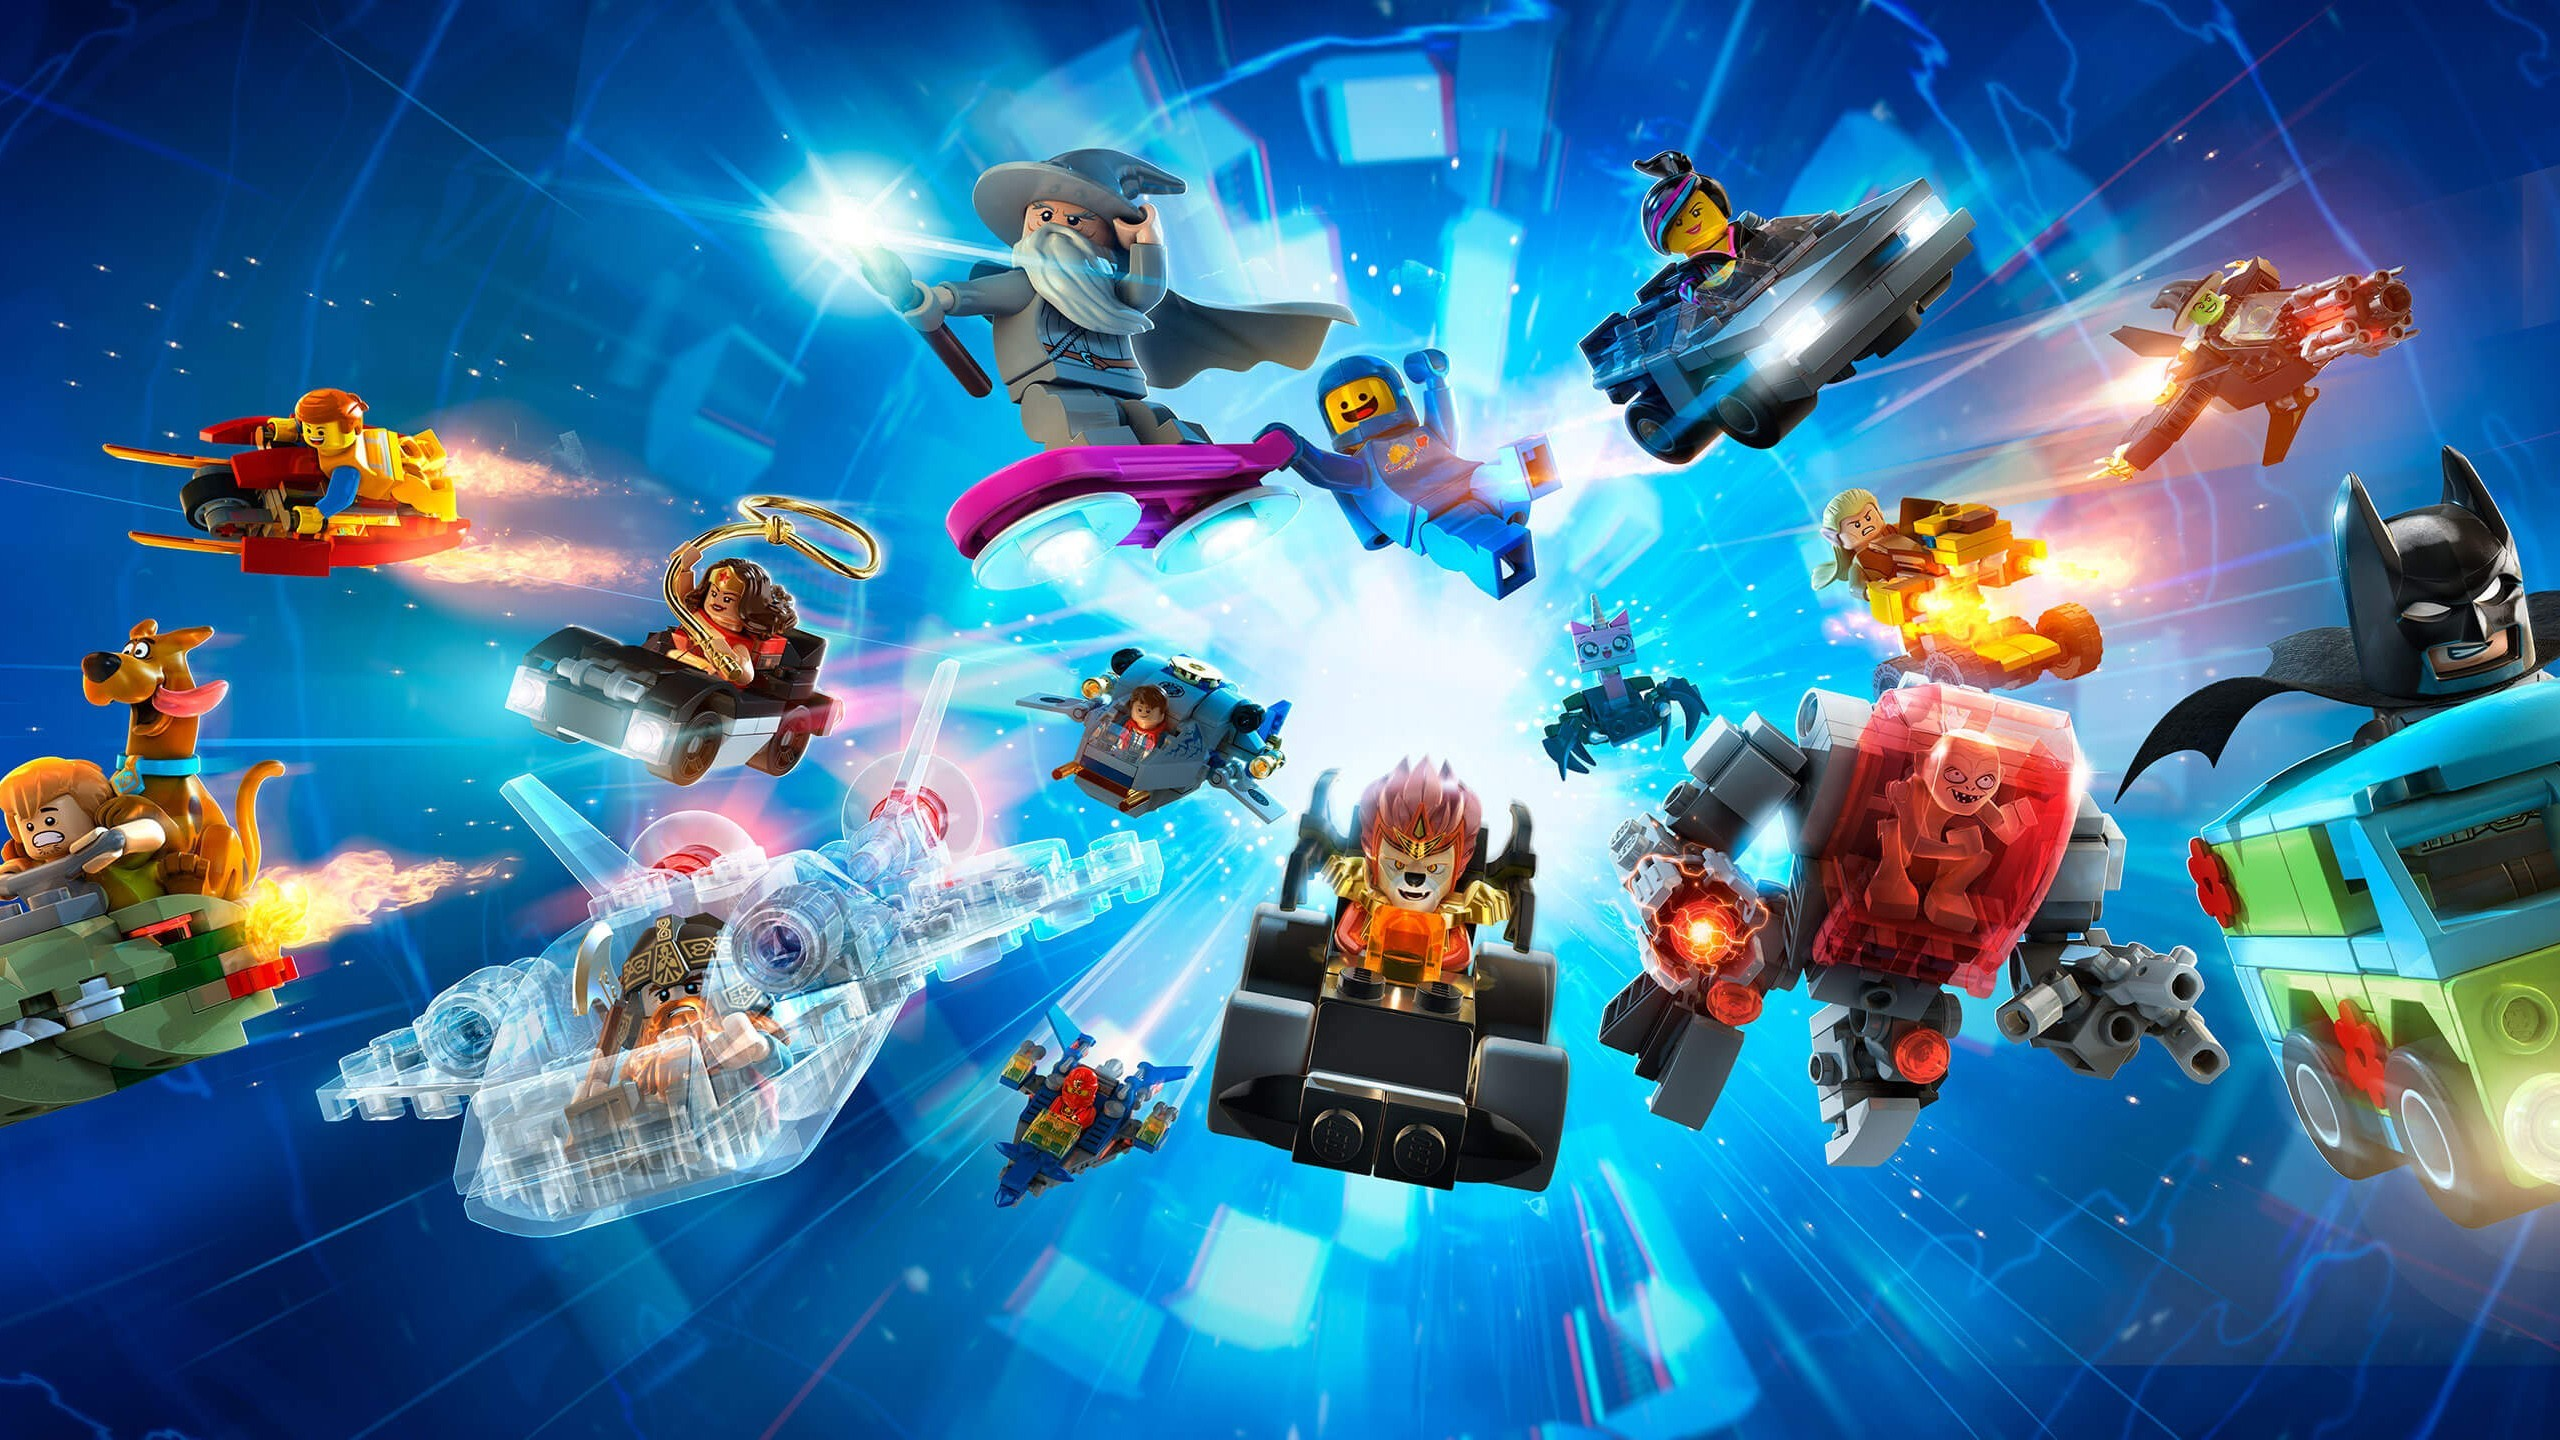 Lego Gaming 2560x1440 Wallpaper The Hot Desktop Wallpapers And Backgrounds For Your Pc And Mobile